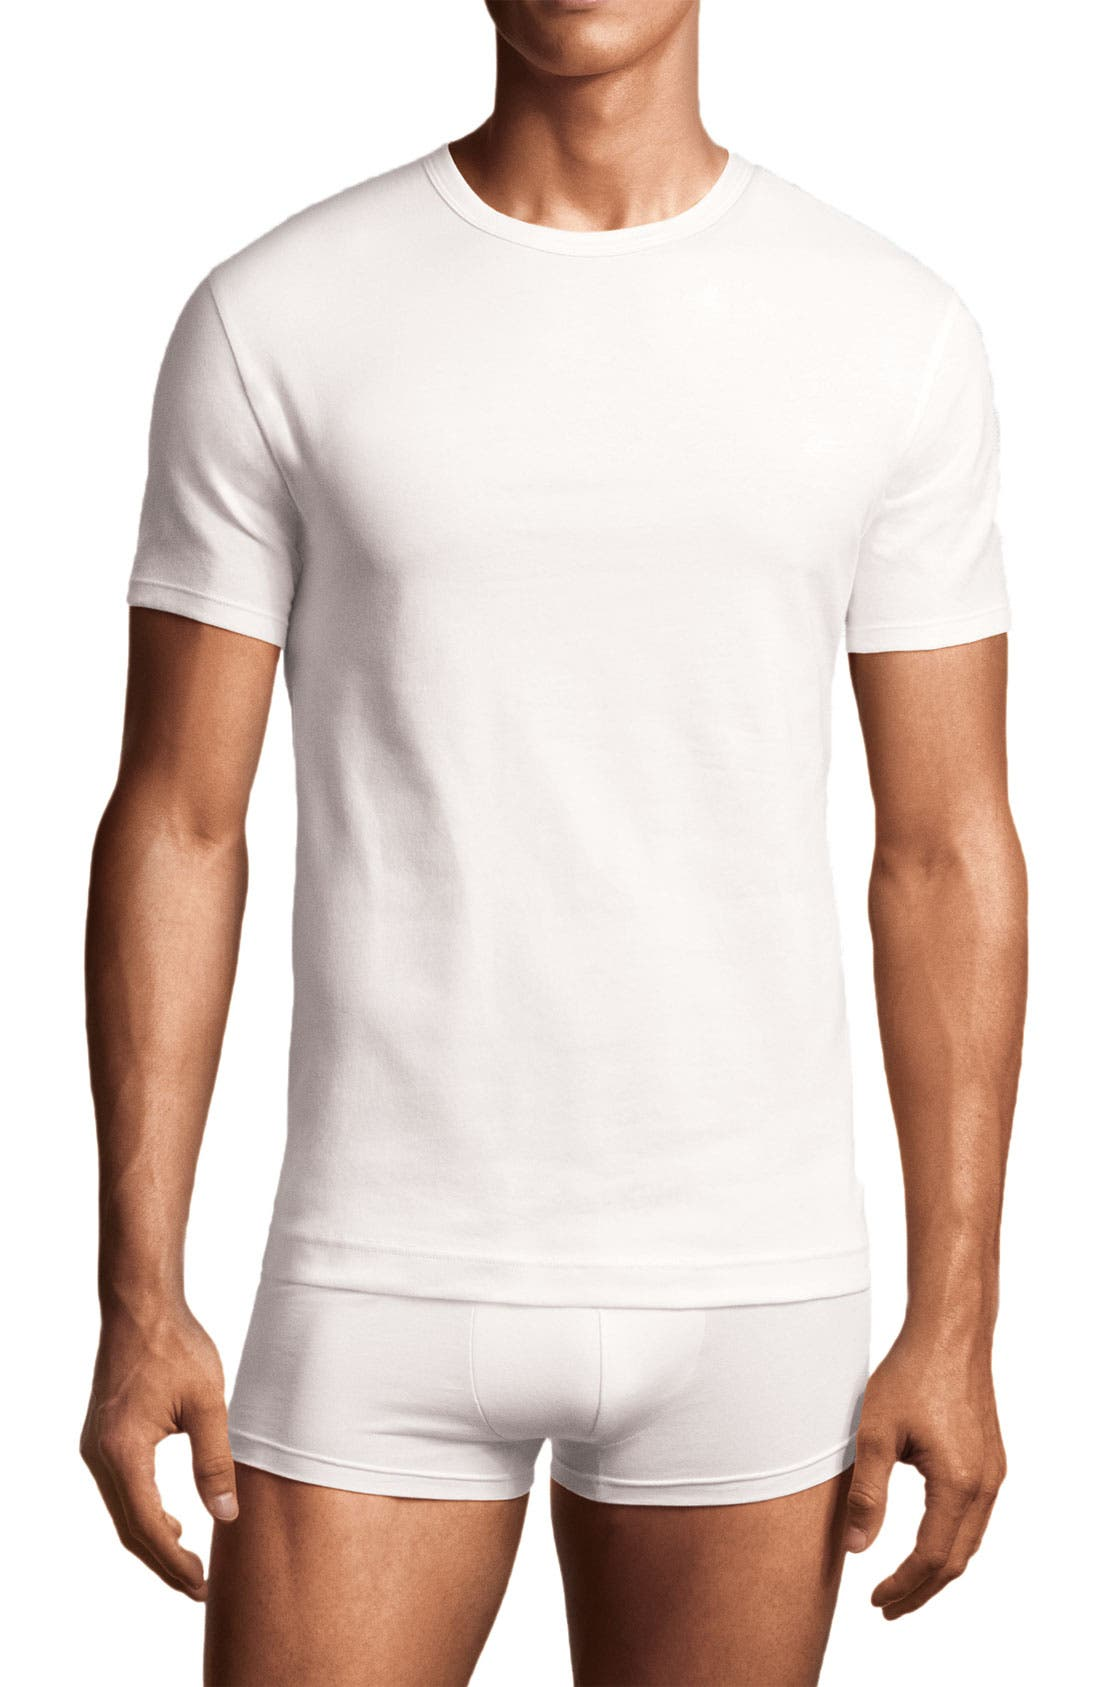 Alternate Image 1 Selected - Calvin Klein Crewneck T-Shirt (2-Pack) (Tall)